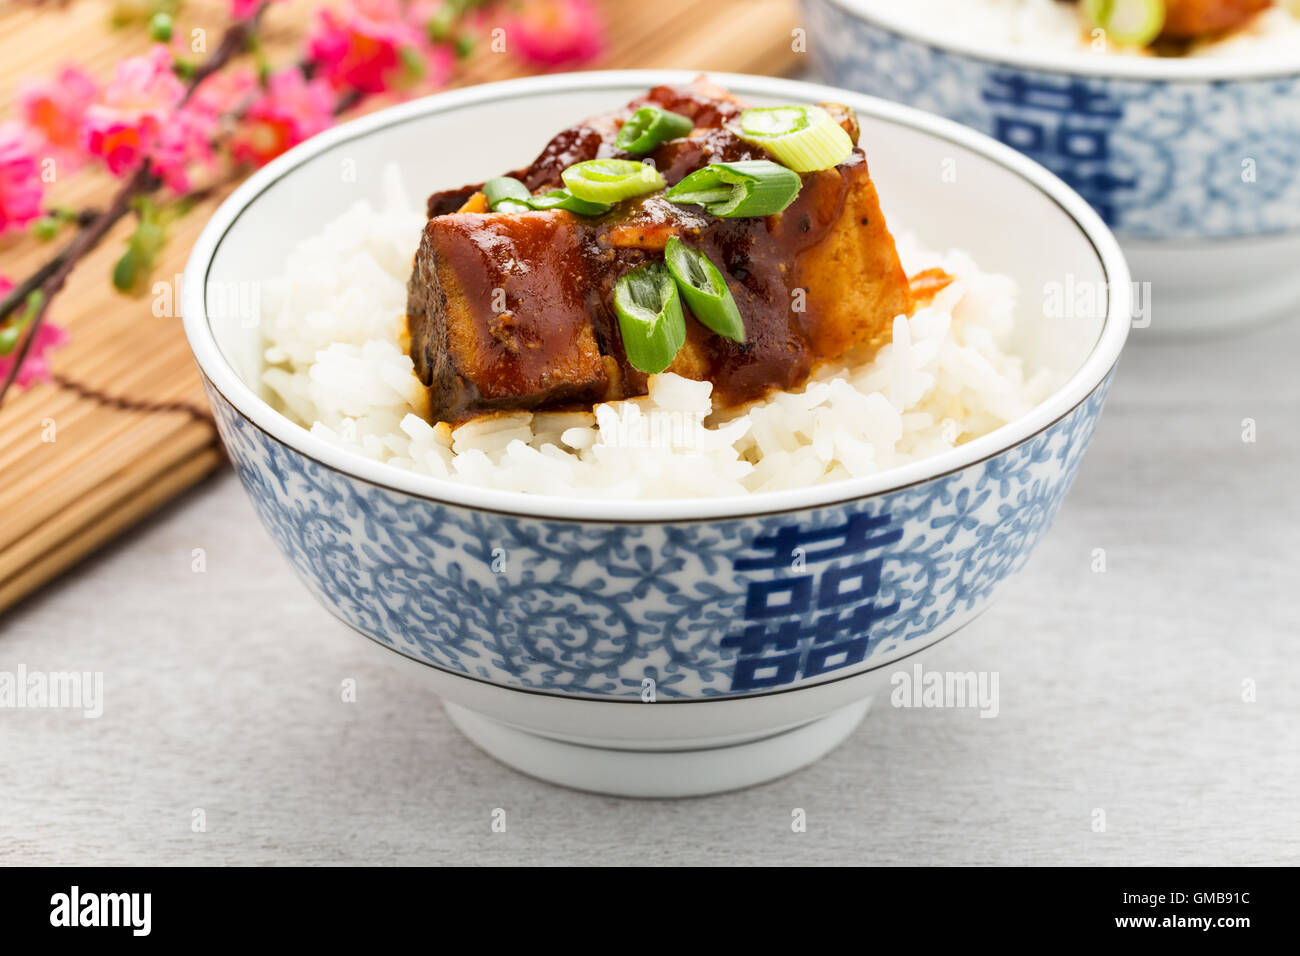 pieces of smoked barbecue tofu with rice and green onions. - Stock Image